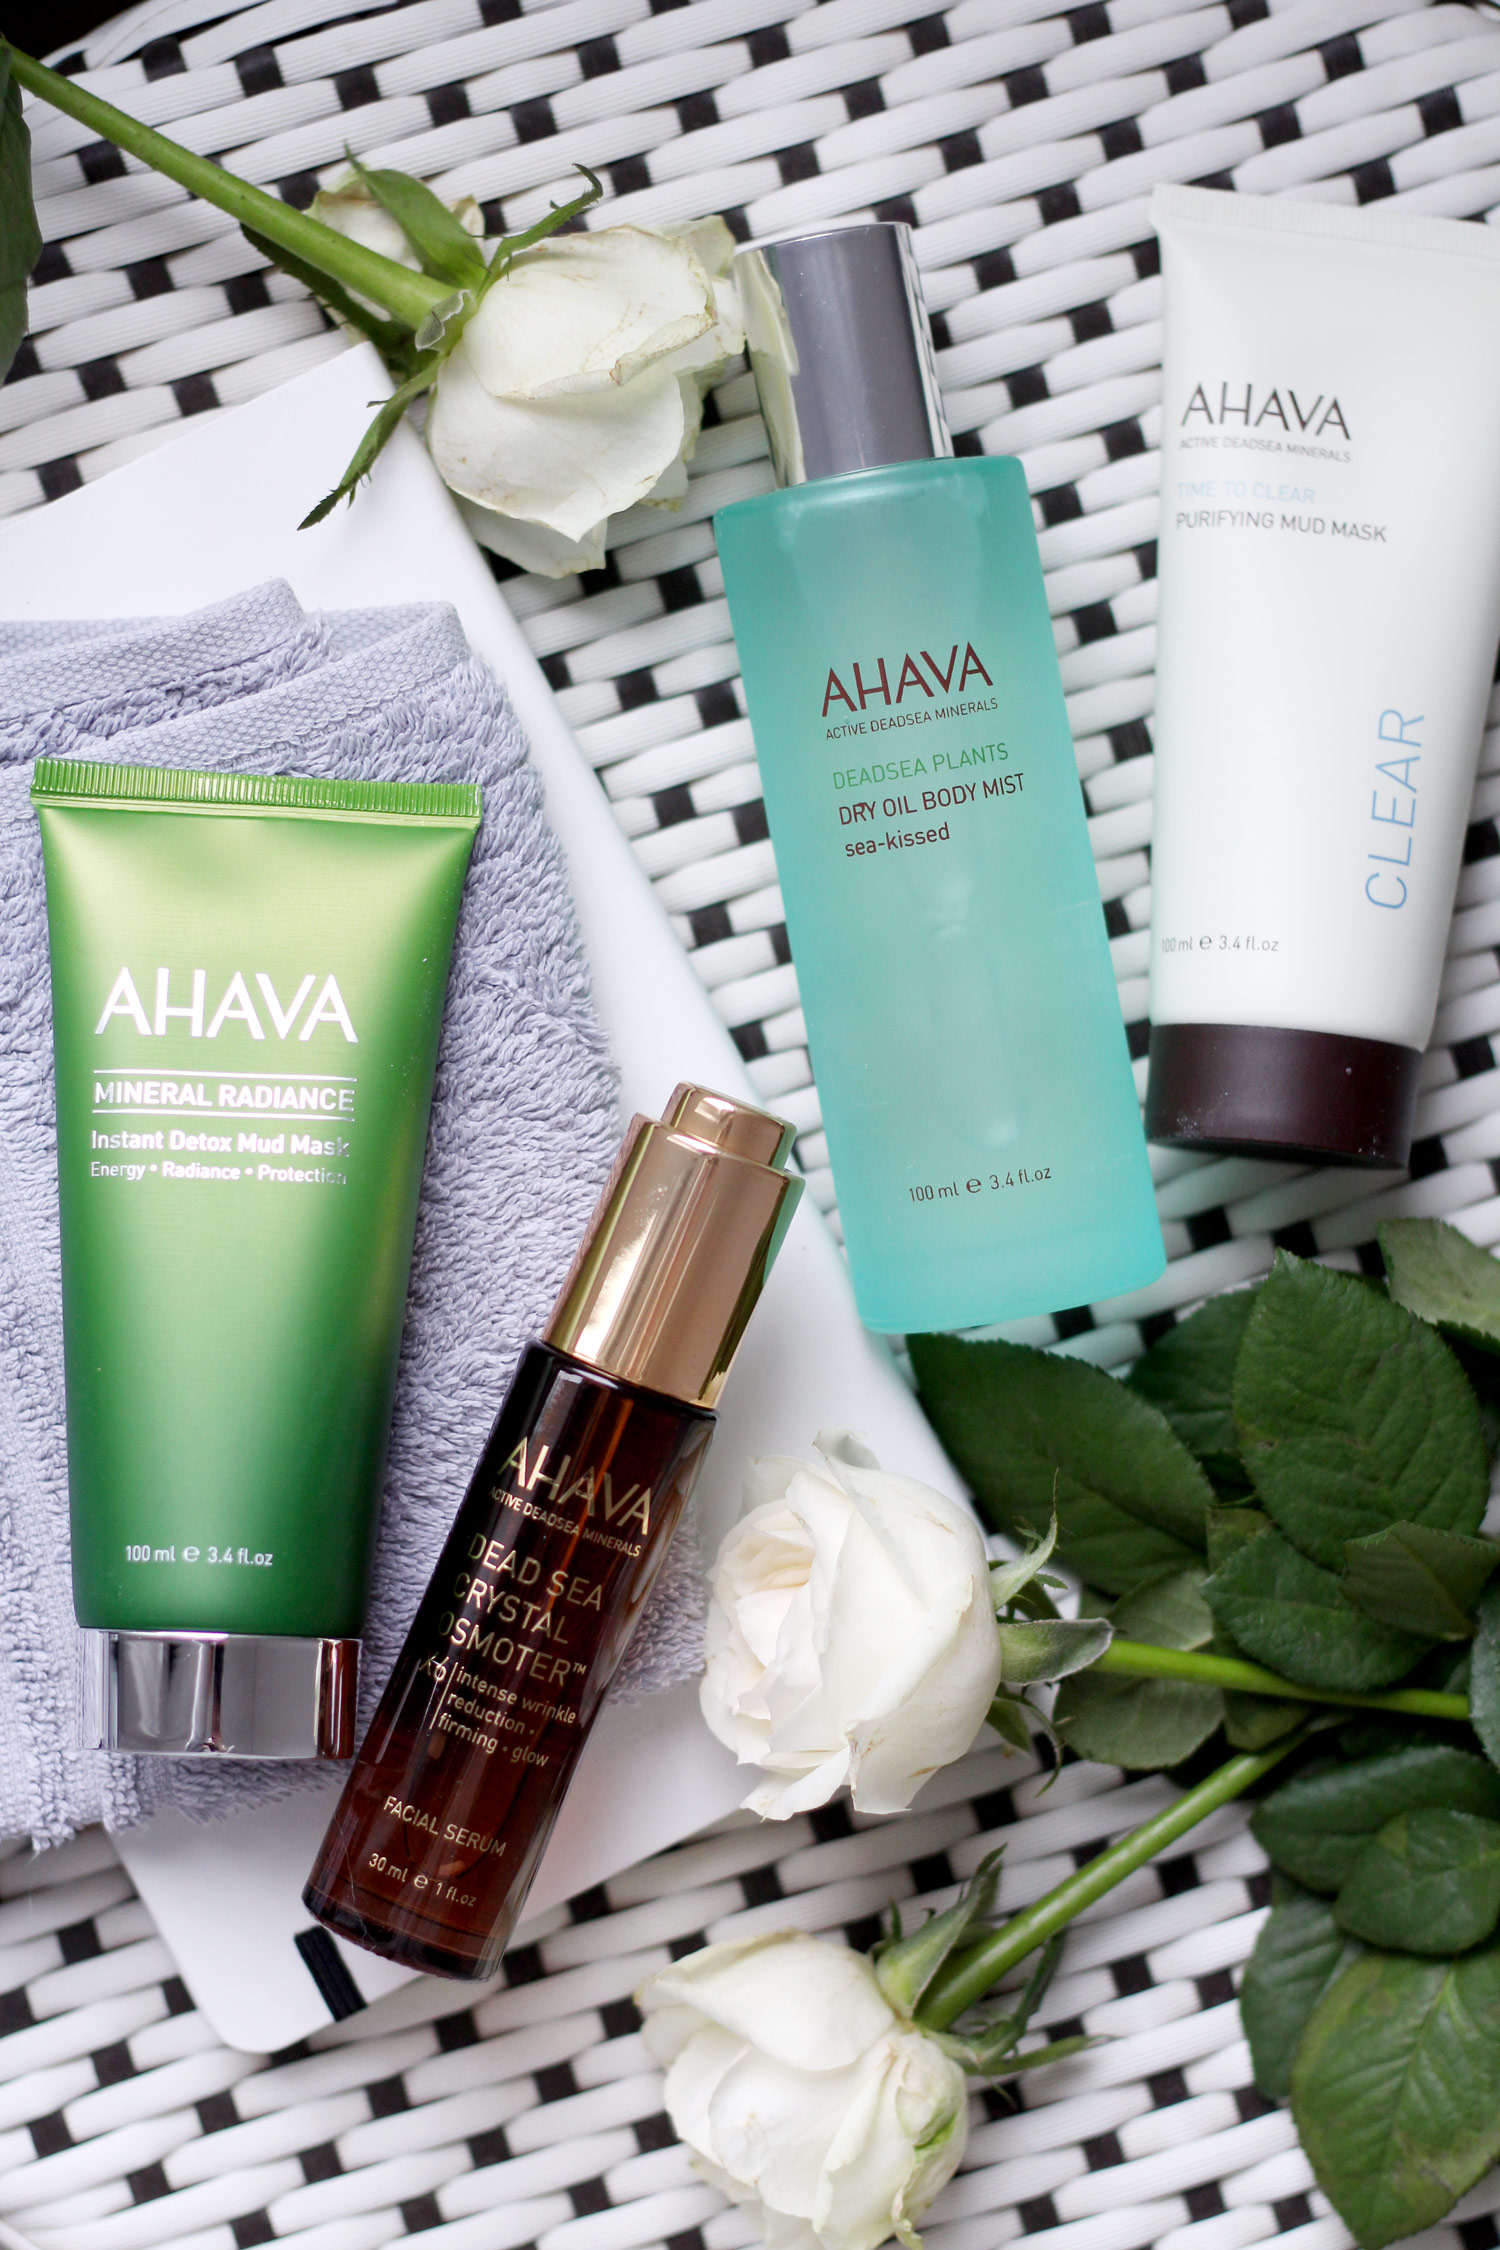 ahava-skincare-review-mud-mask-dead-sea-range